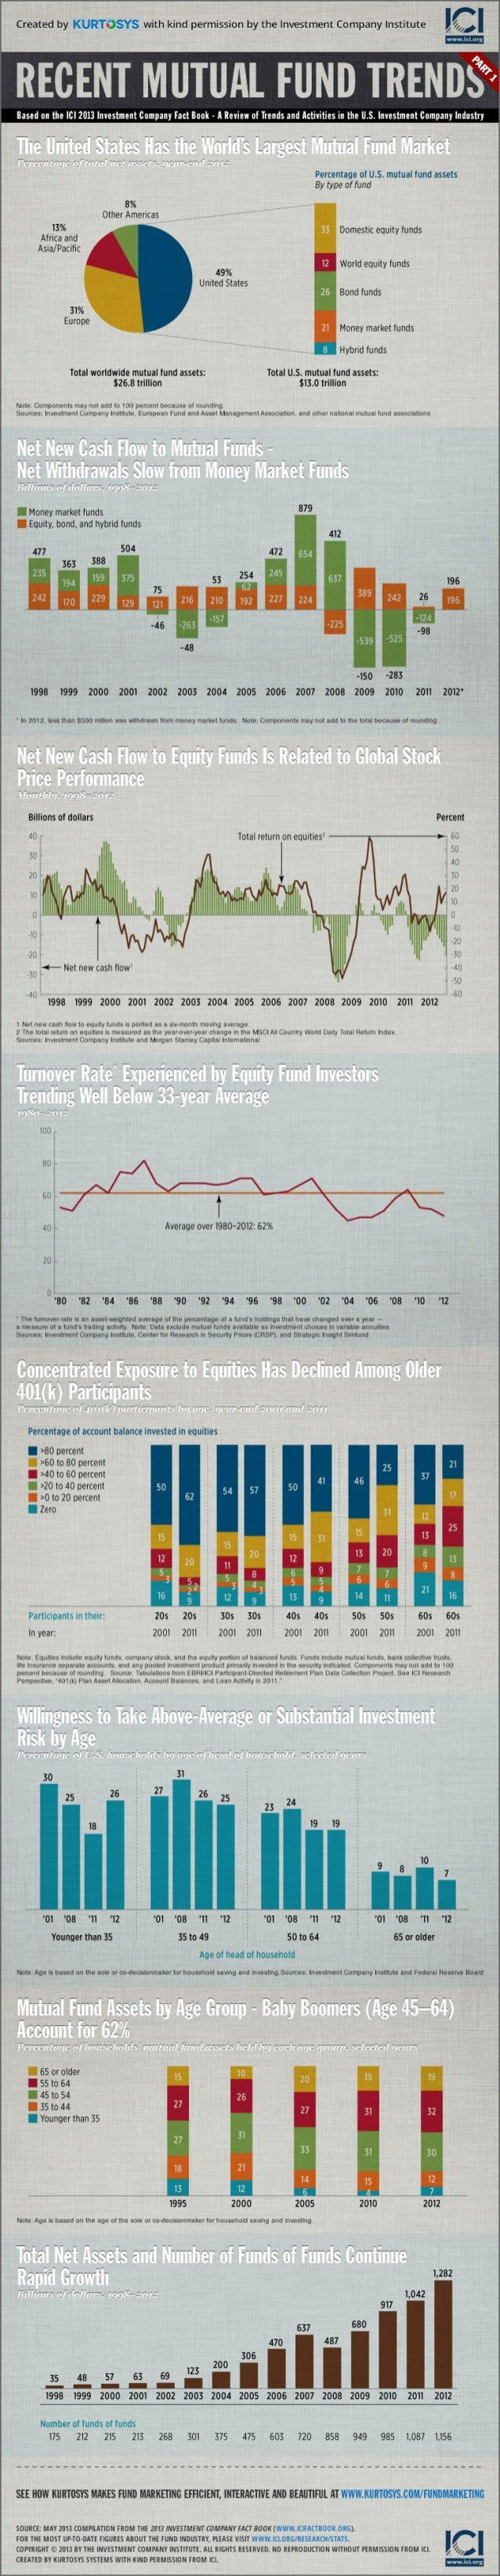 Recent Mutual Fund Trends [INFOGRAPHIC] - part 1